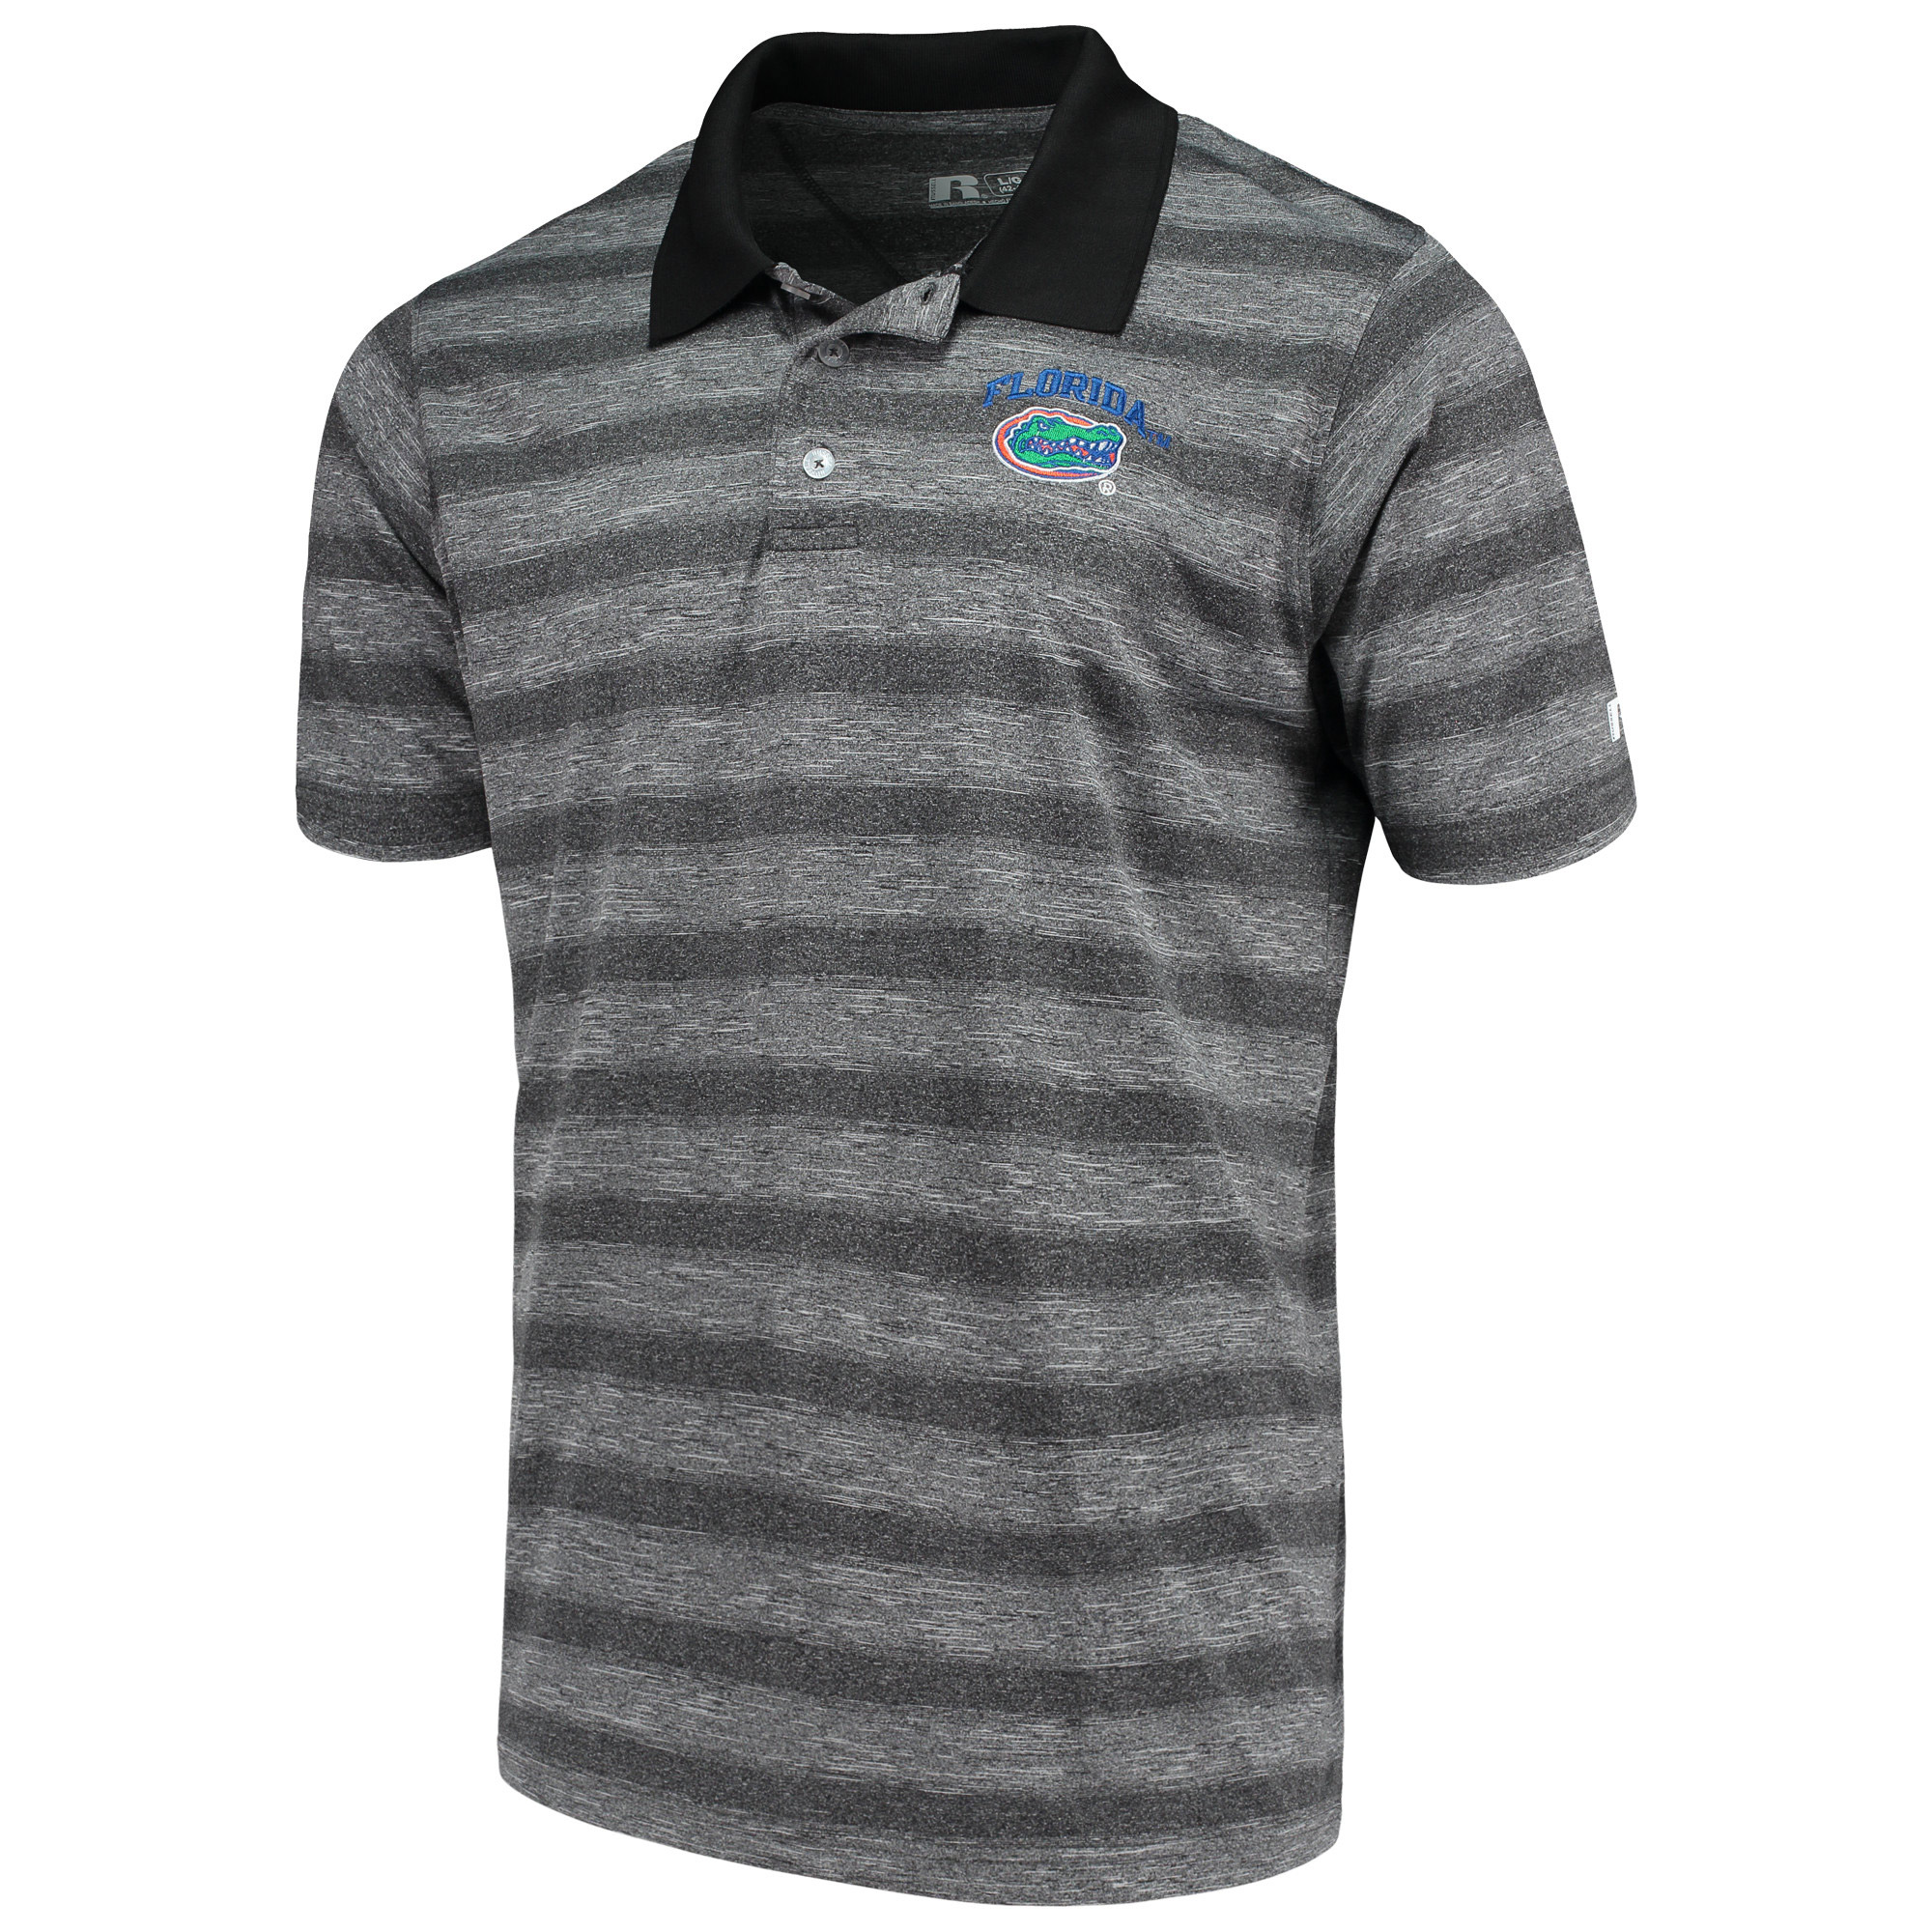 Men's Russell Heathered Black Florida Gators Classic Striped Polo